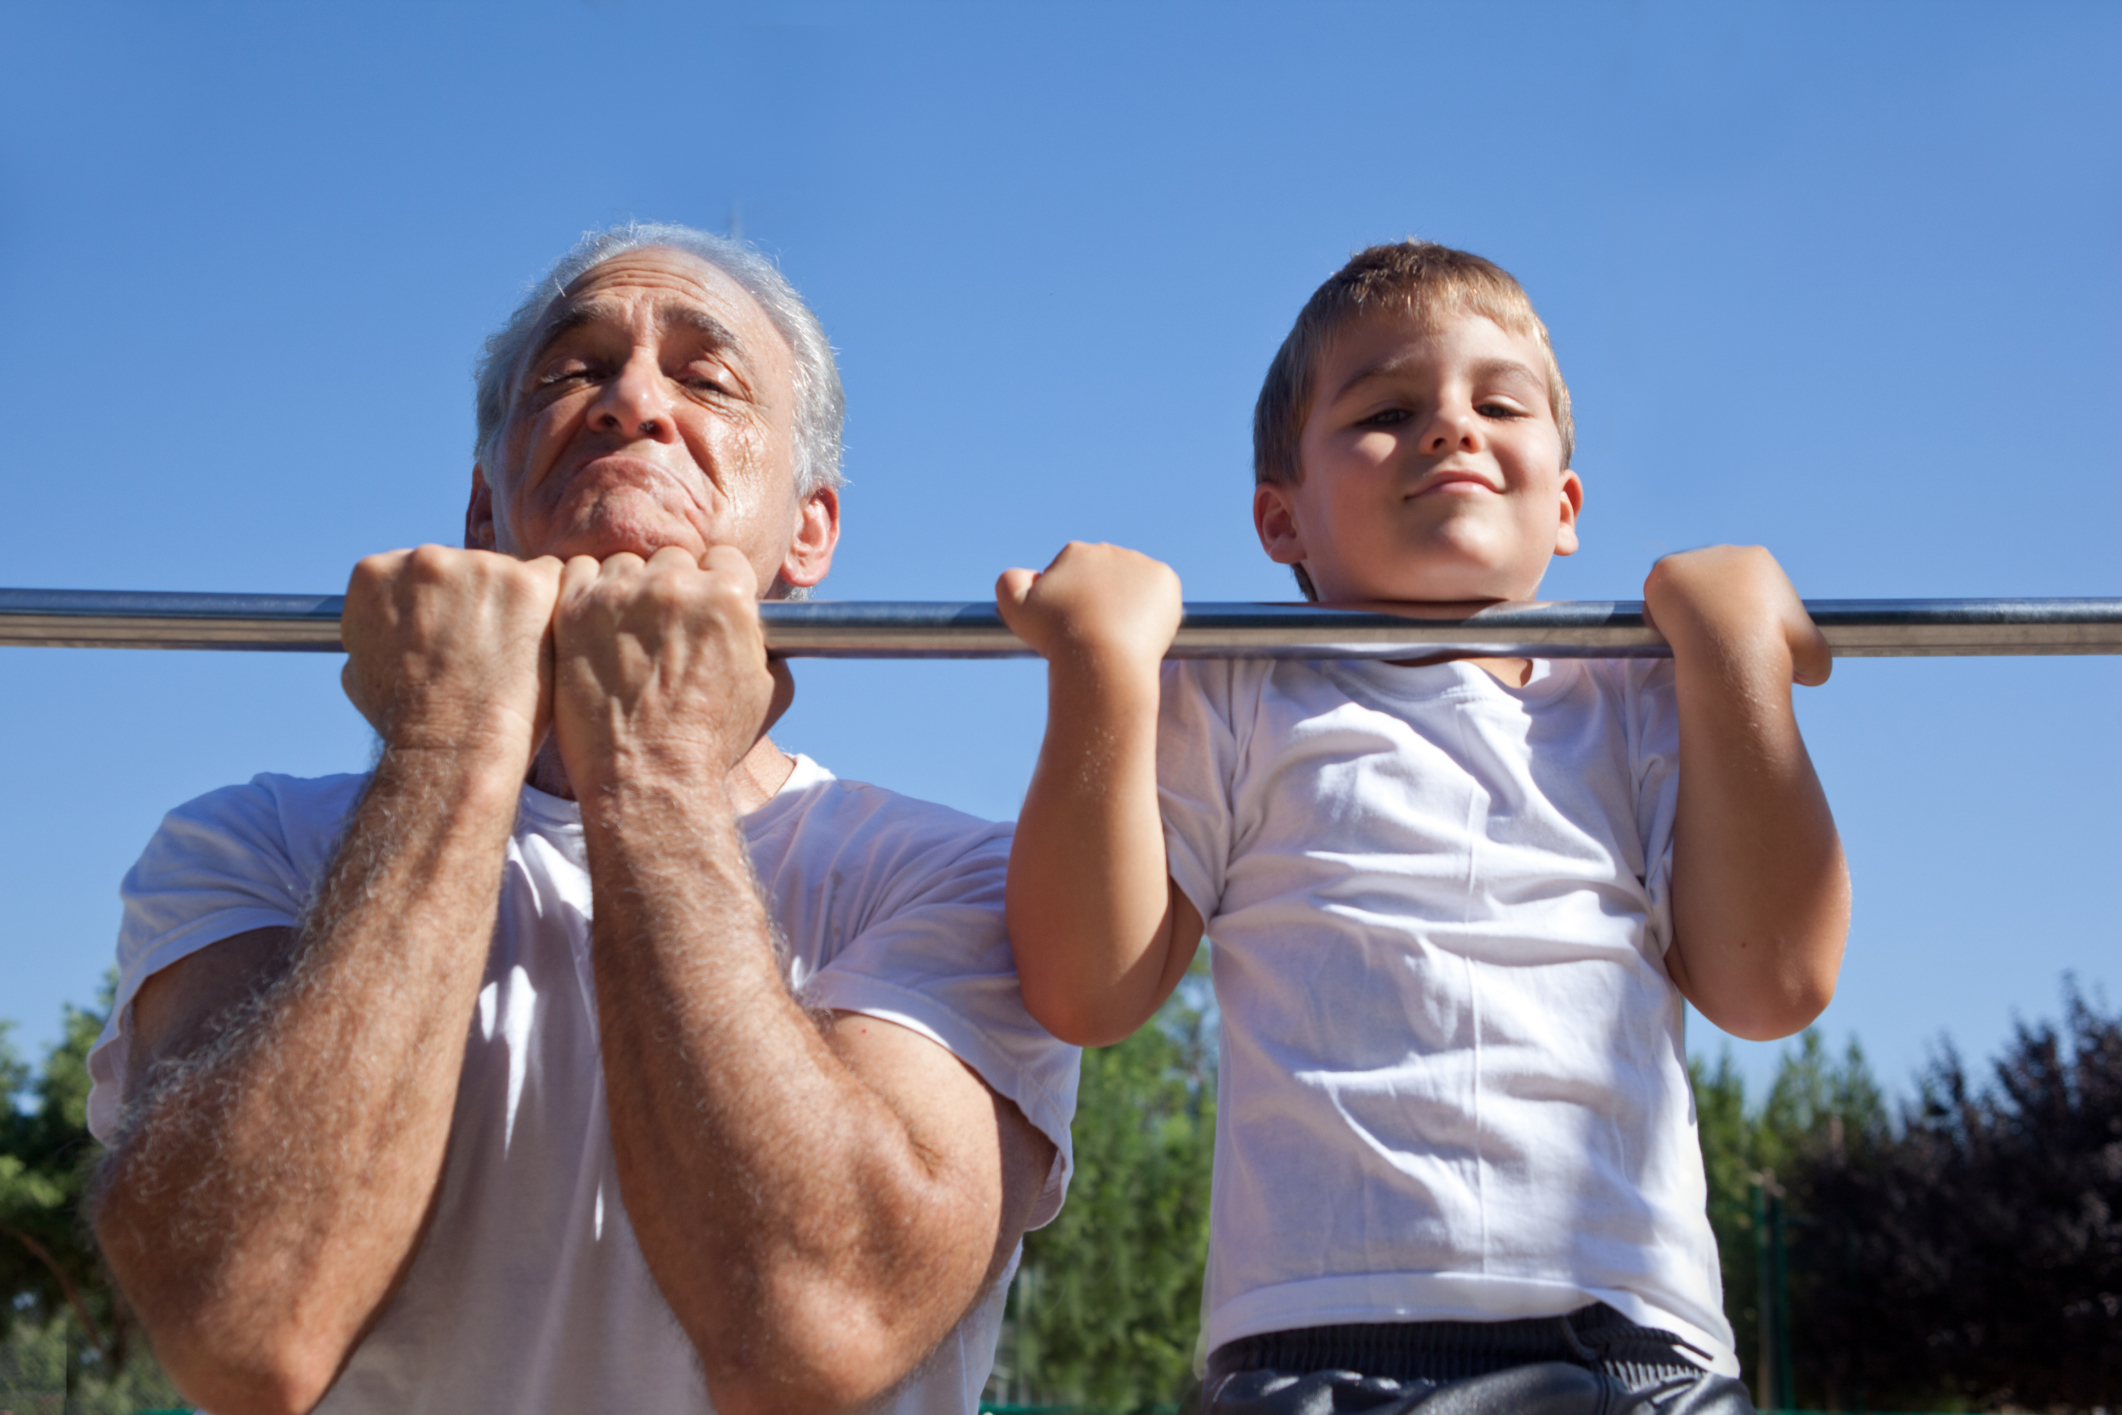 An image of an elderly man and a child doing chin ups.